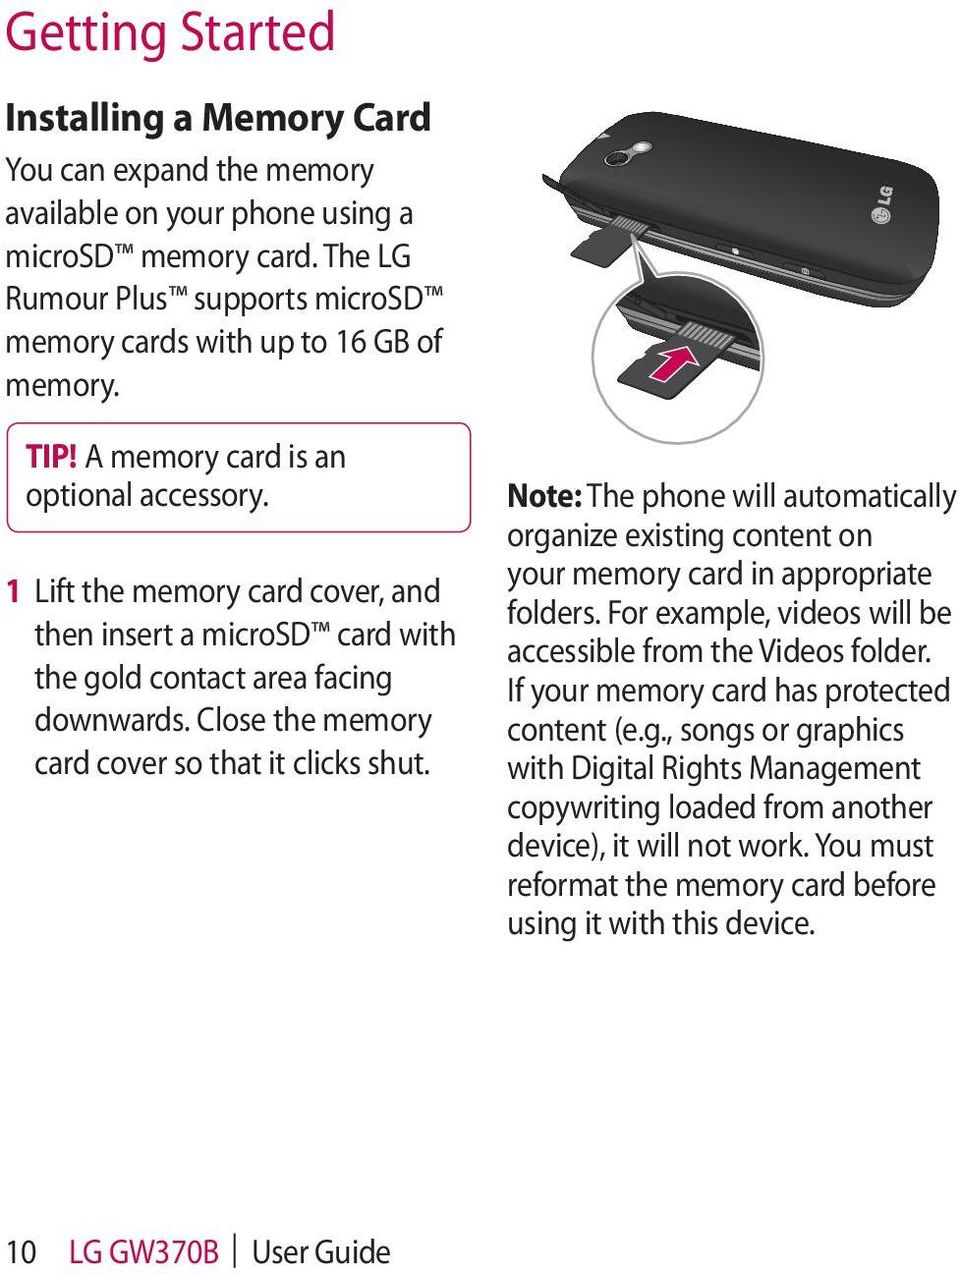 Close the memory card cover so that it clicks shut. Note: The phone will automatically organize existing content on your memory card in appropriate folders.